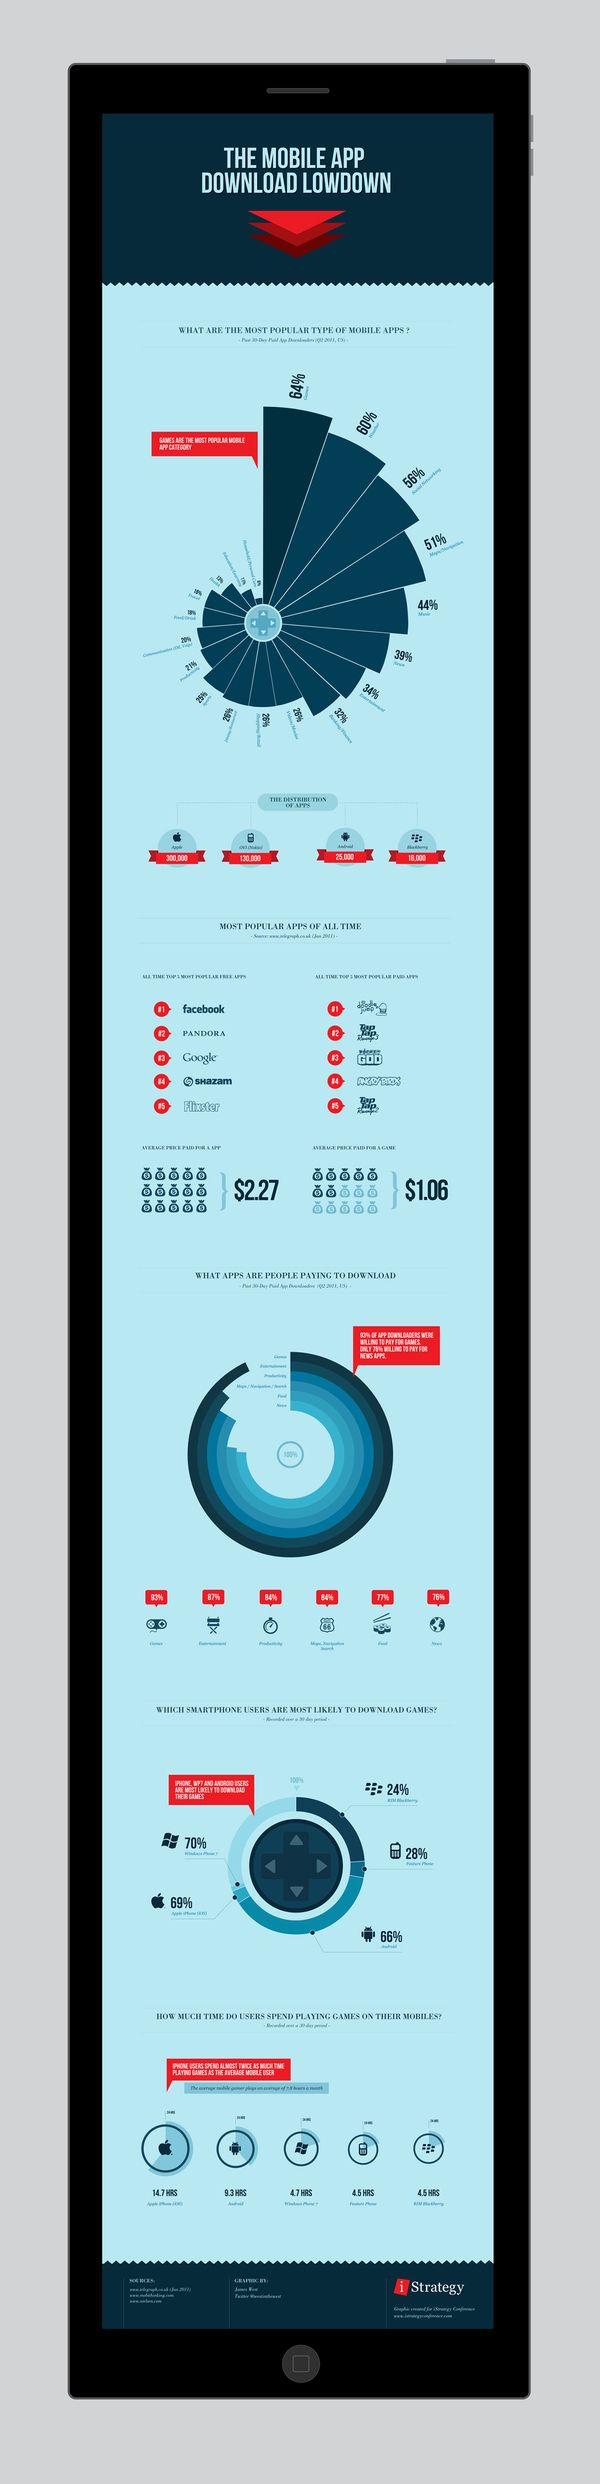 The mobile app download lowdown - INFOGRAPHIC by James West, via Behance